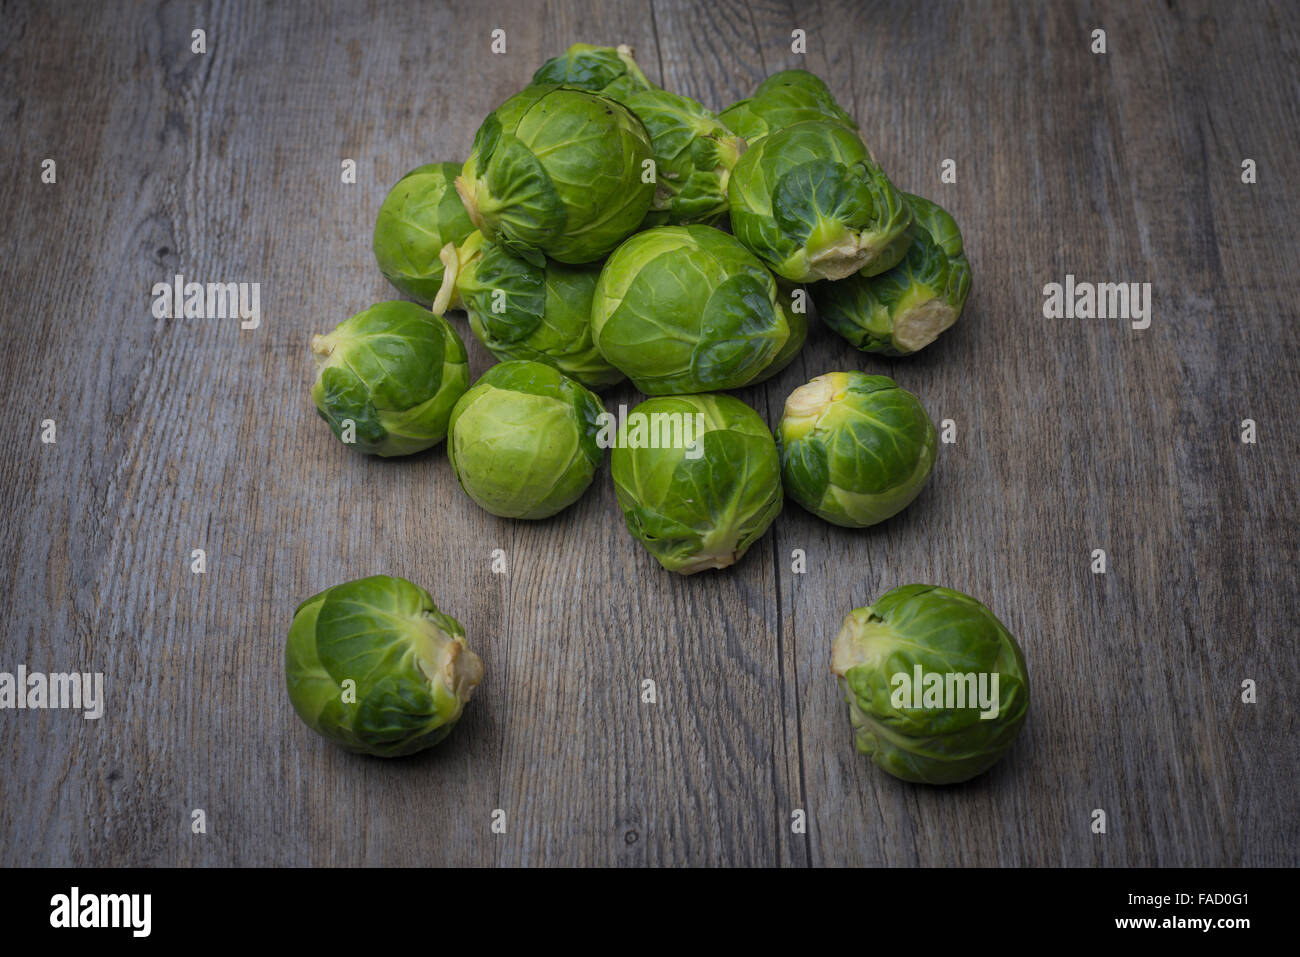 pile of brussel sprouts - Stock Image